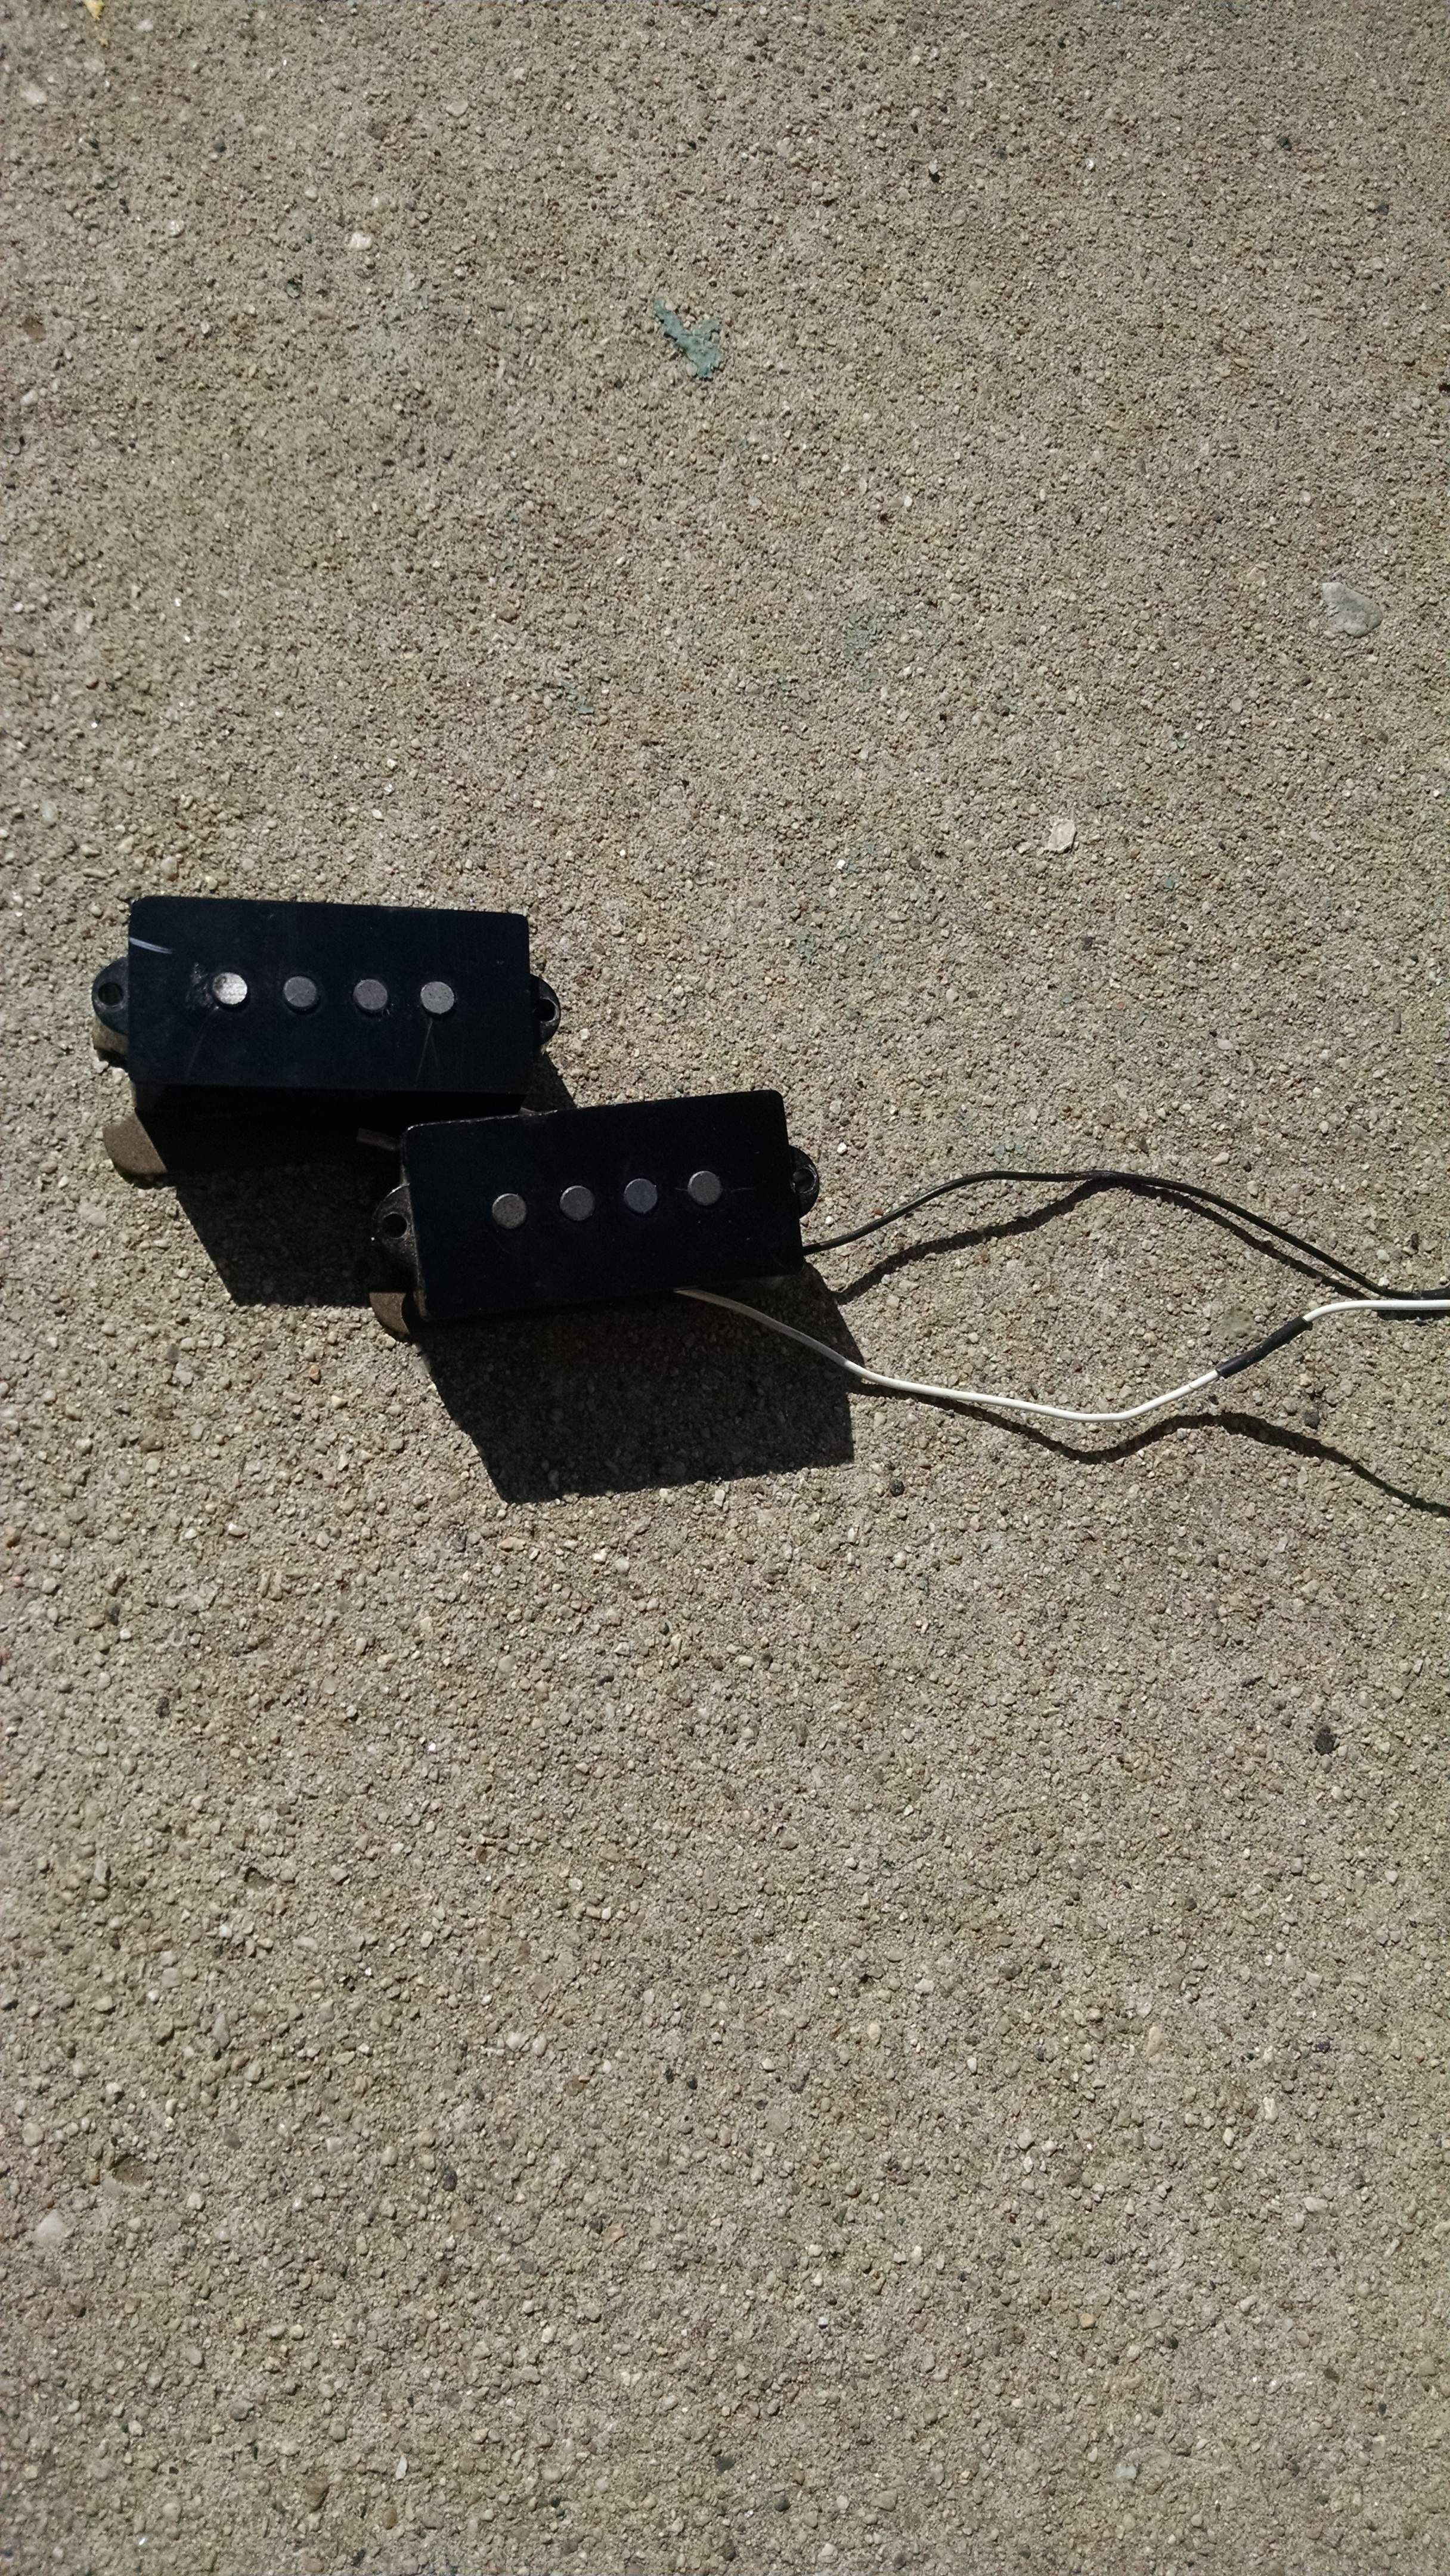 Squire Telecaster Switch Wiring Also Fender Telecaster Texas Special